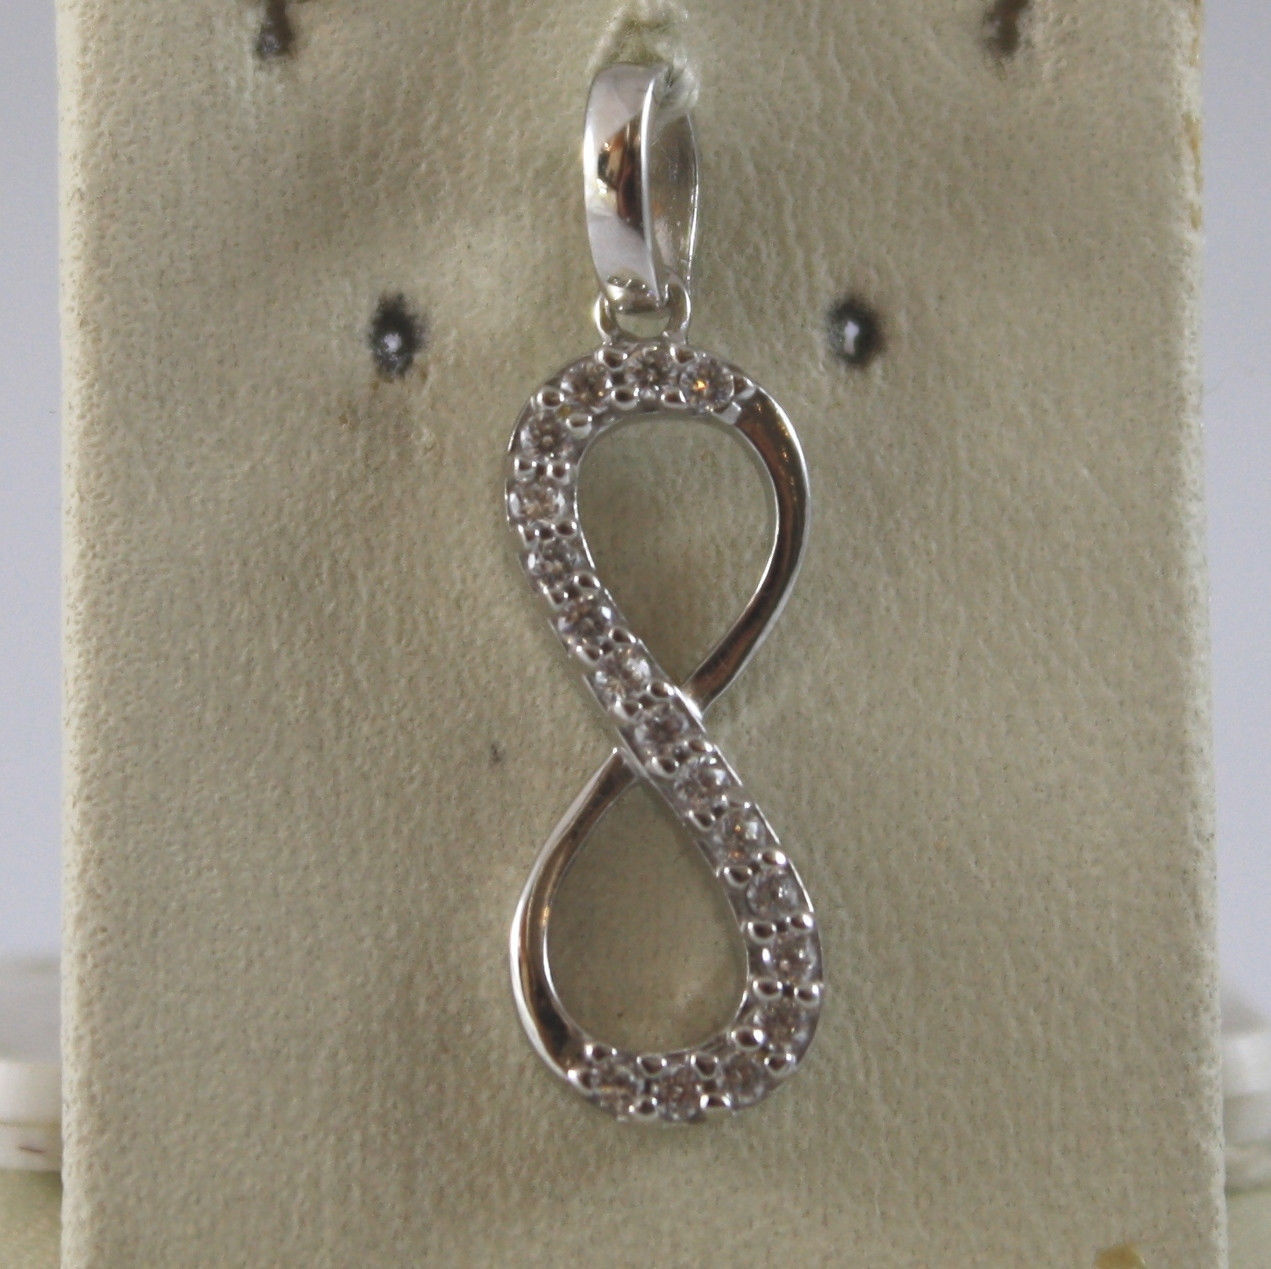 SOLID 18K WHITE GOLD PENDANT, 0,87 In, WITH INFINITY SYMBOL AND ZIRCONIA